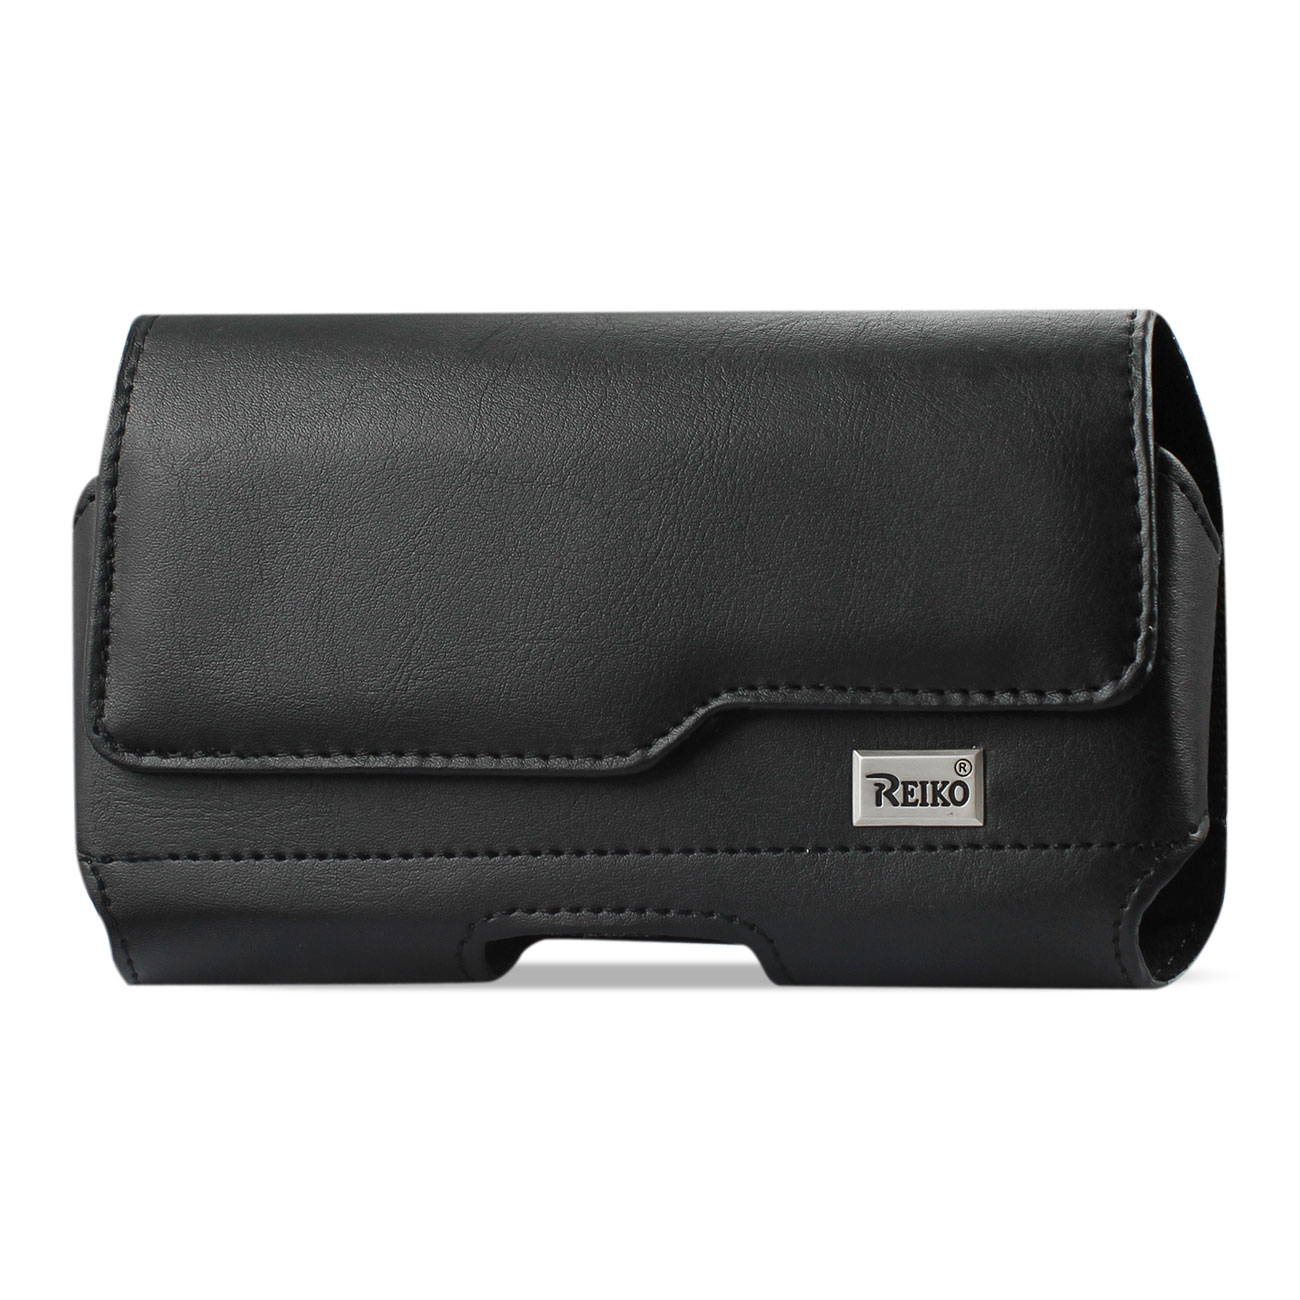 Horizontal Leather Pouch With Z Lid Pattern With Embossed Logo In Black (6.1X3.2X0.7 Inches)